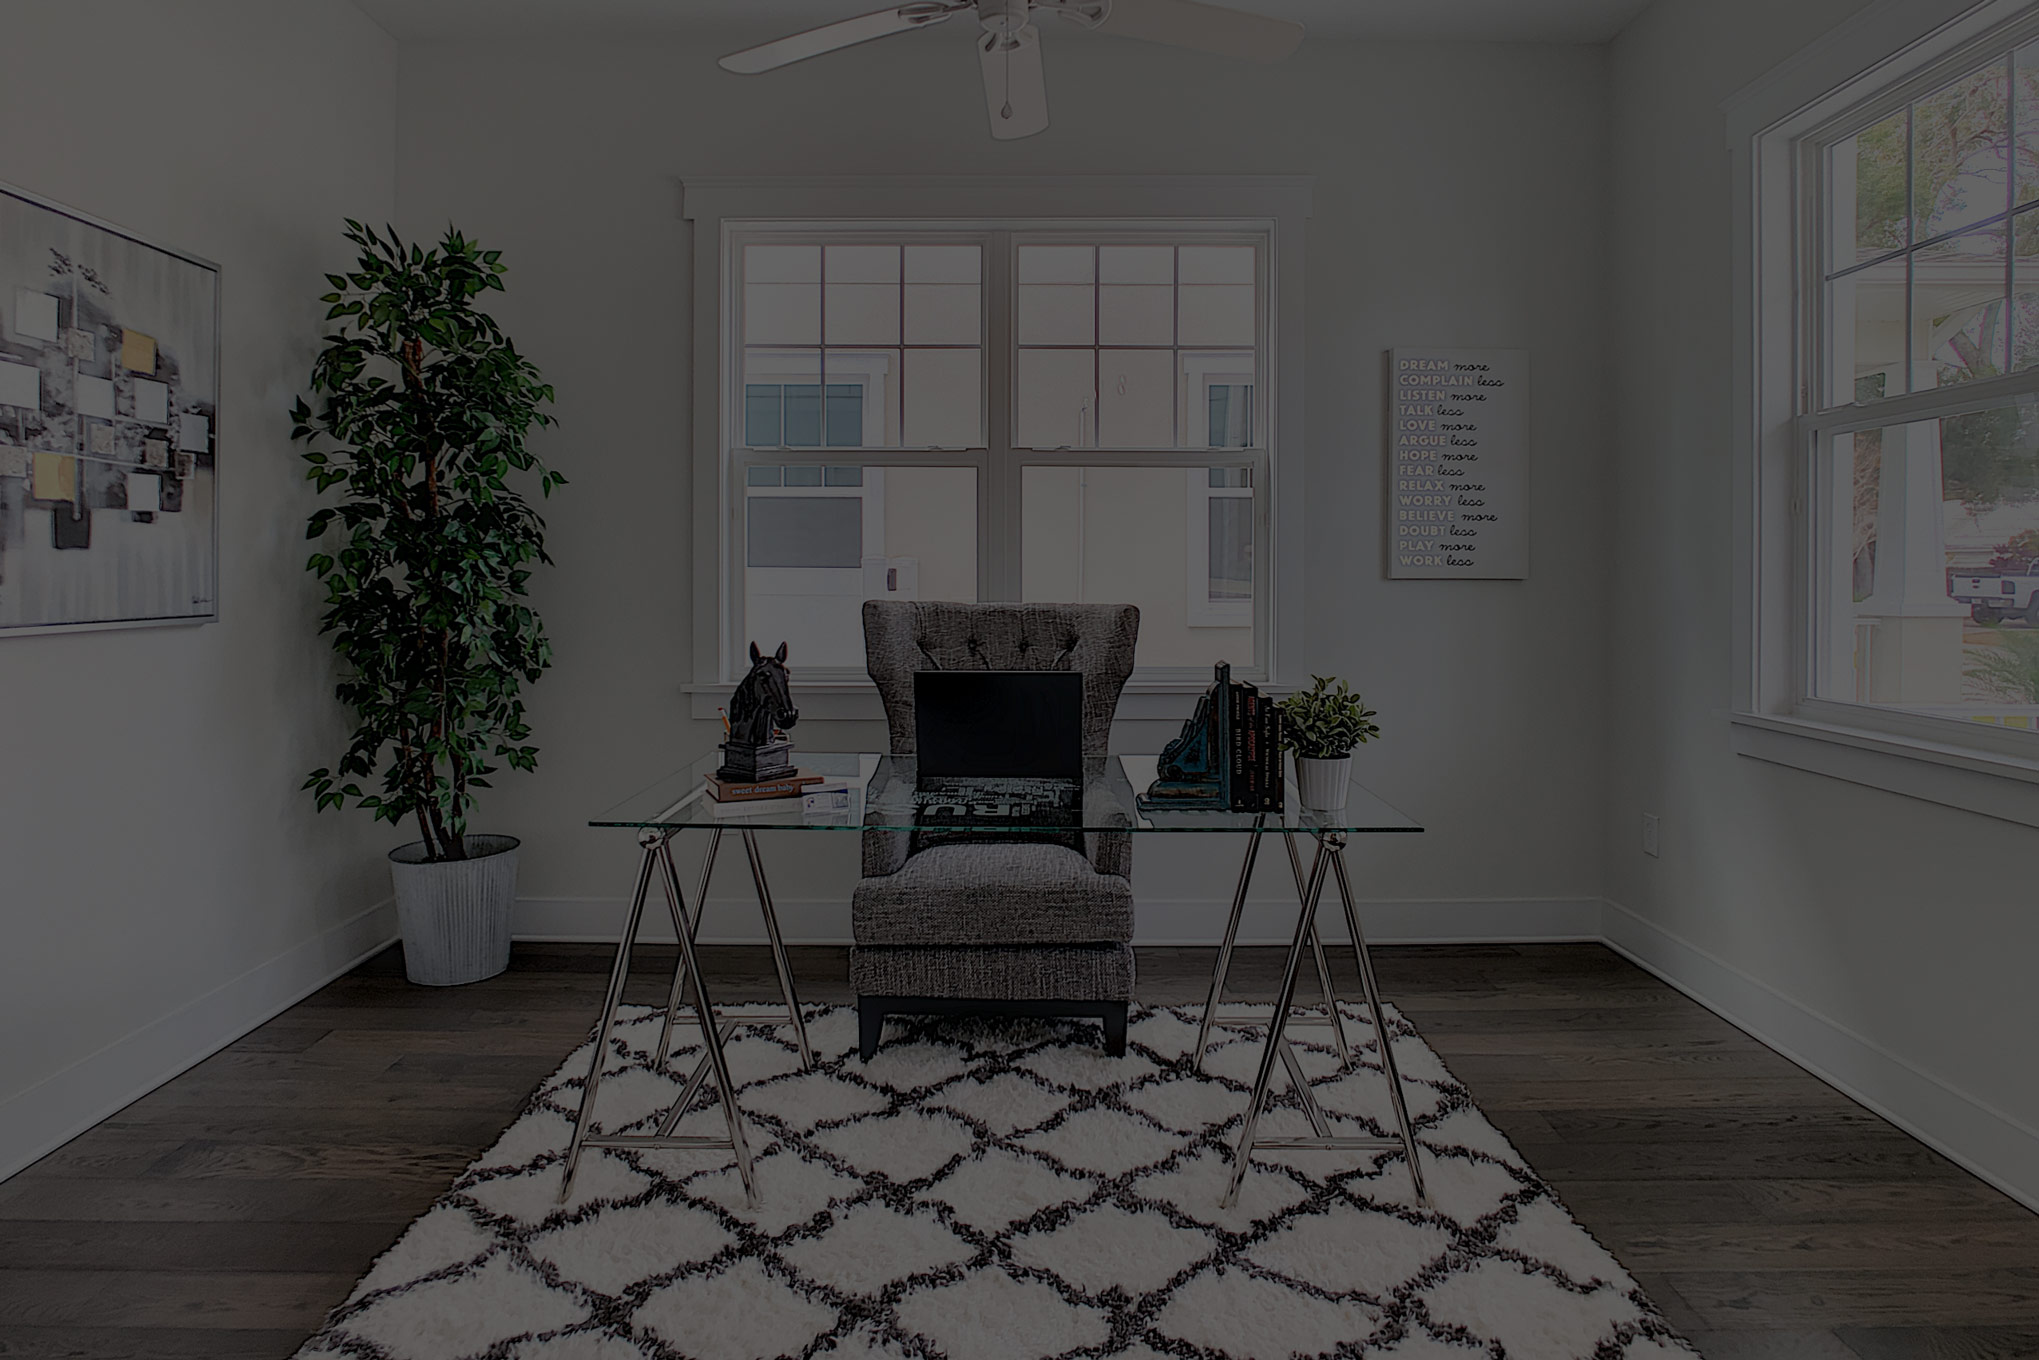 Black and White Staged Office